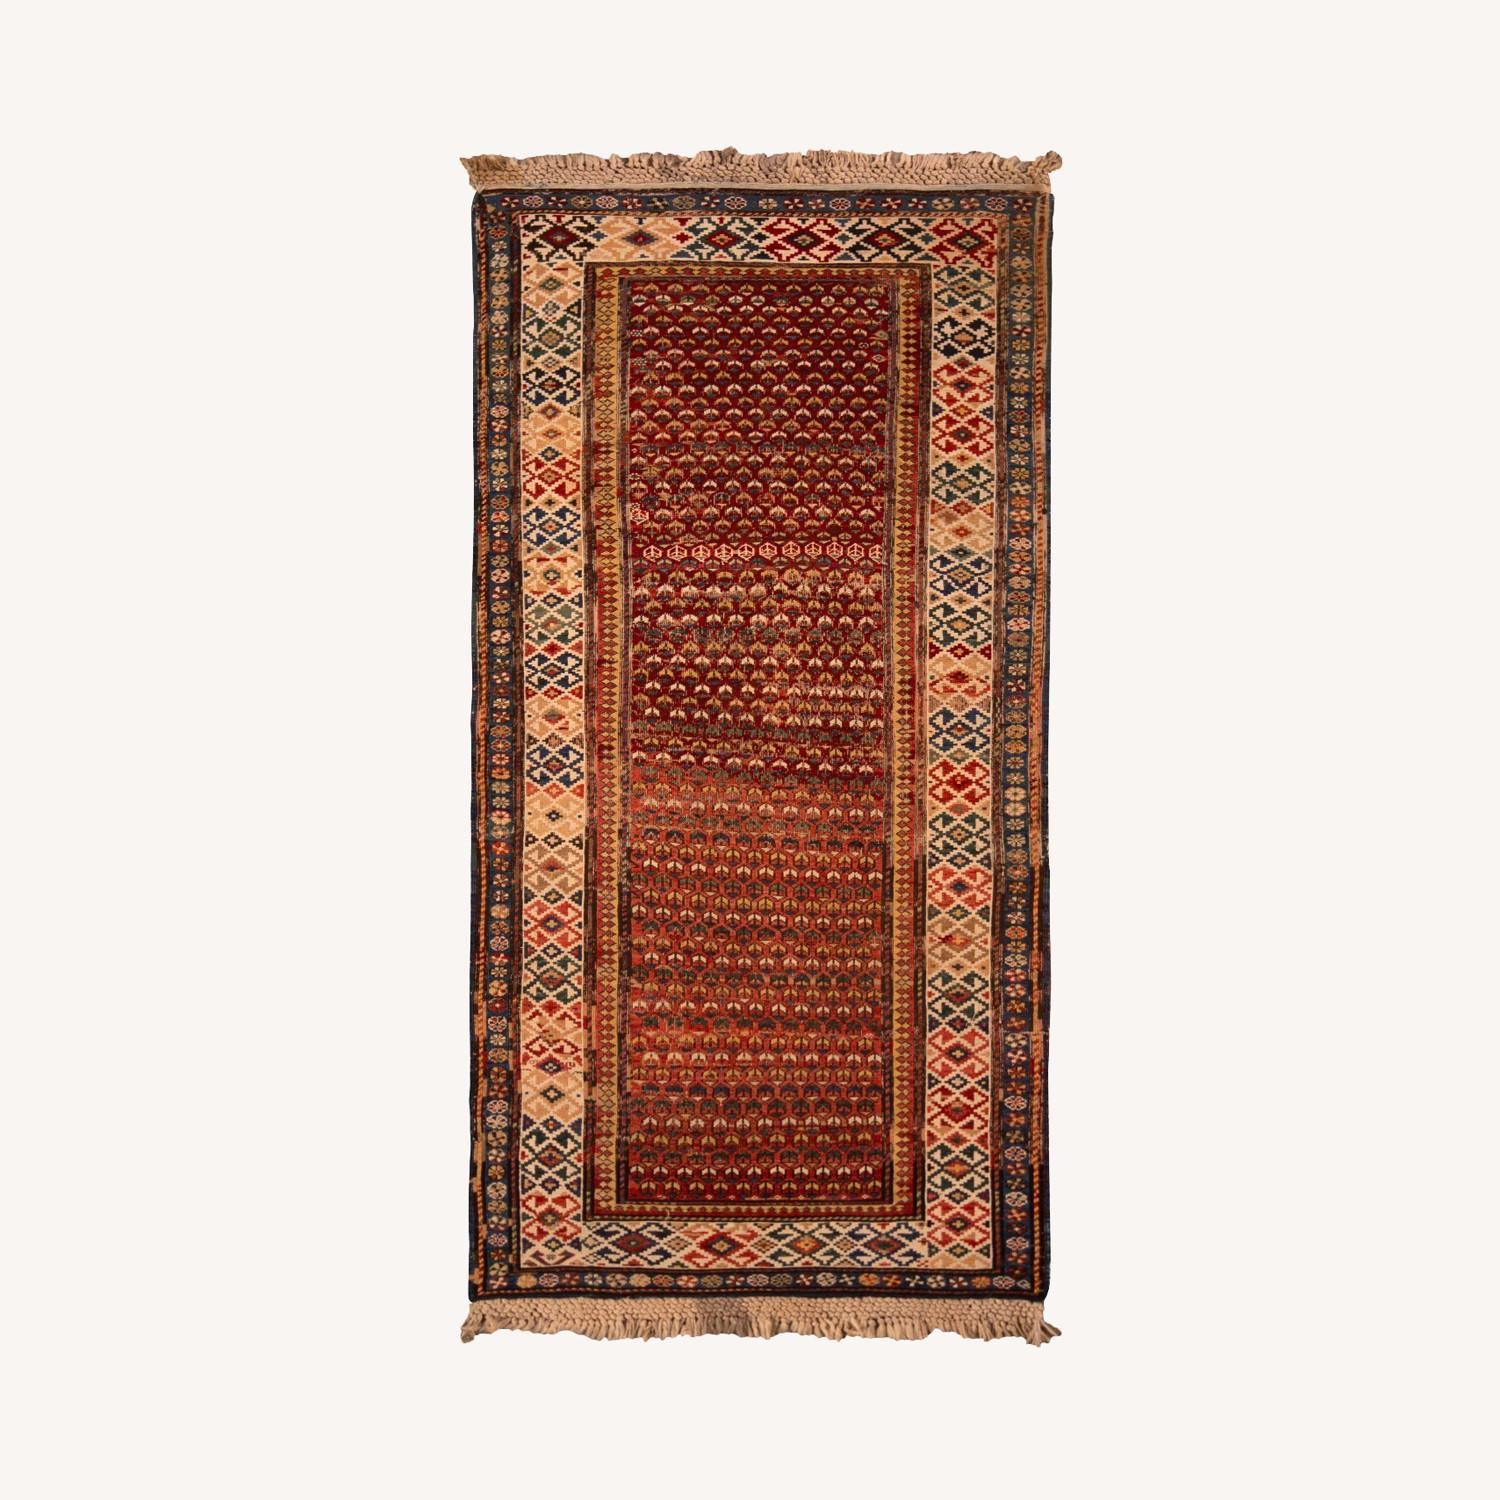 19th-Century Antique Soumak Rug - image-0